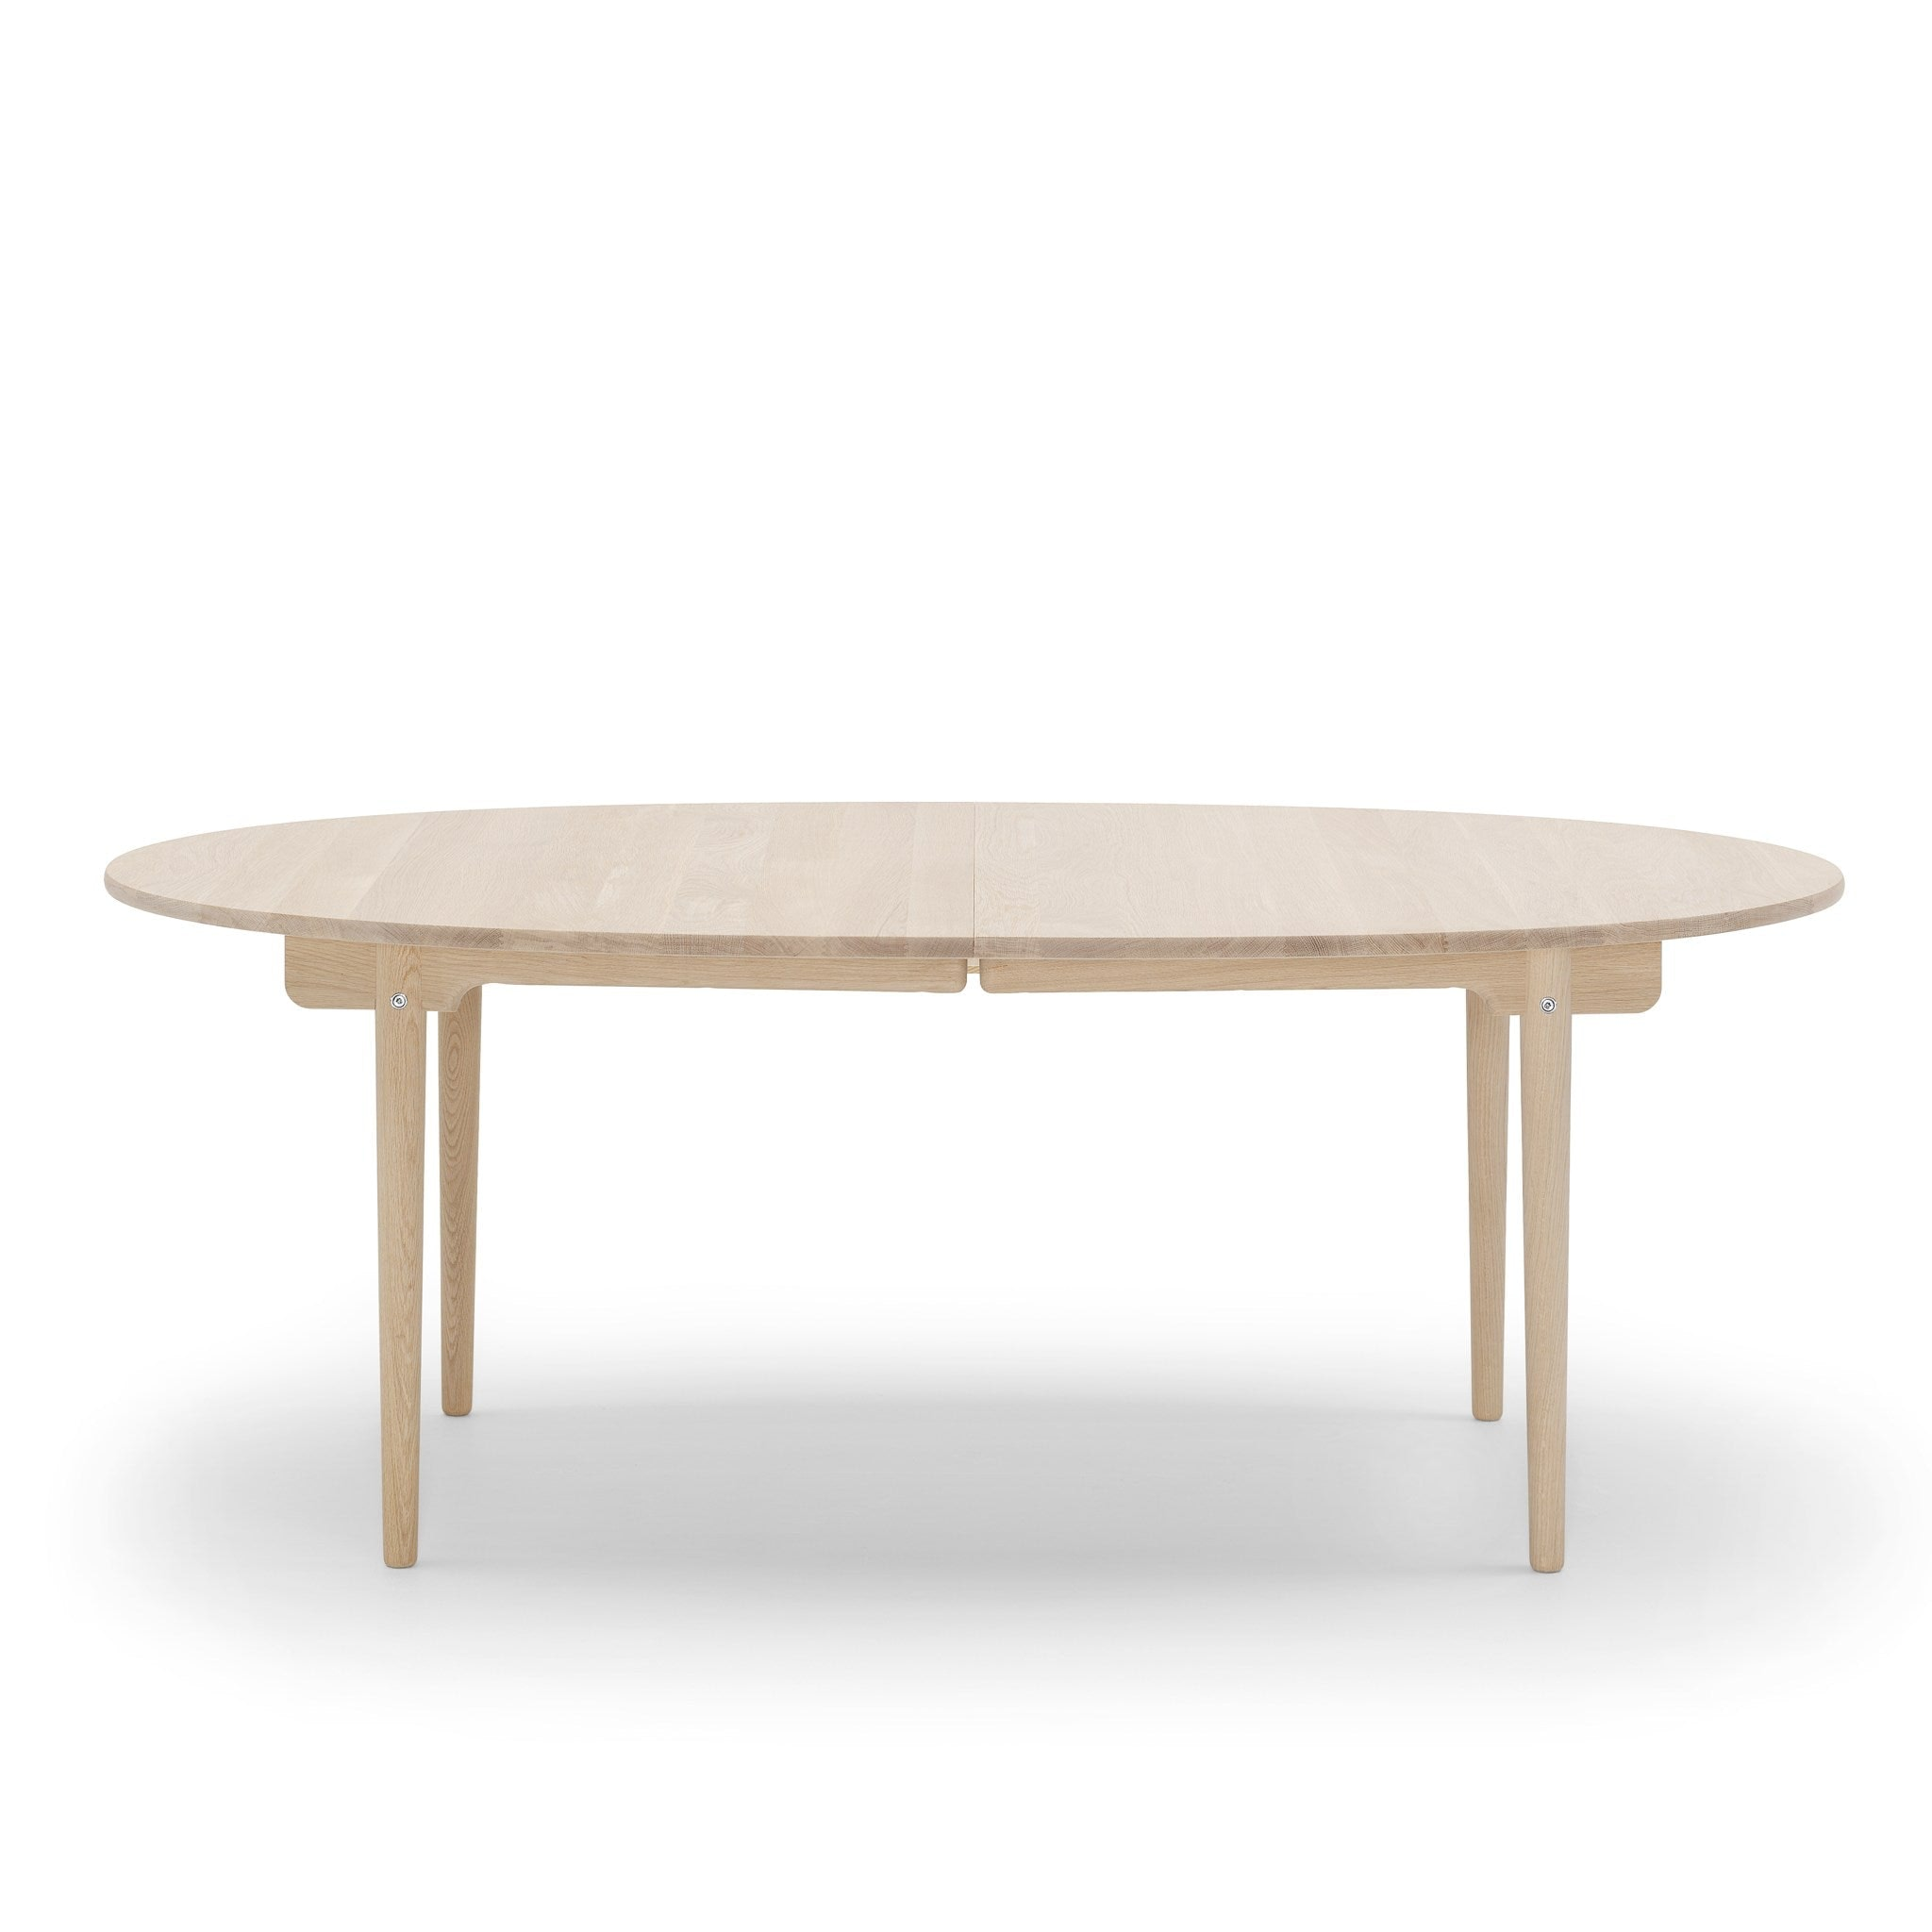 CH338 Table by Carl Hansen & Søn